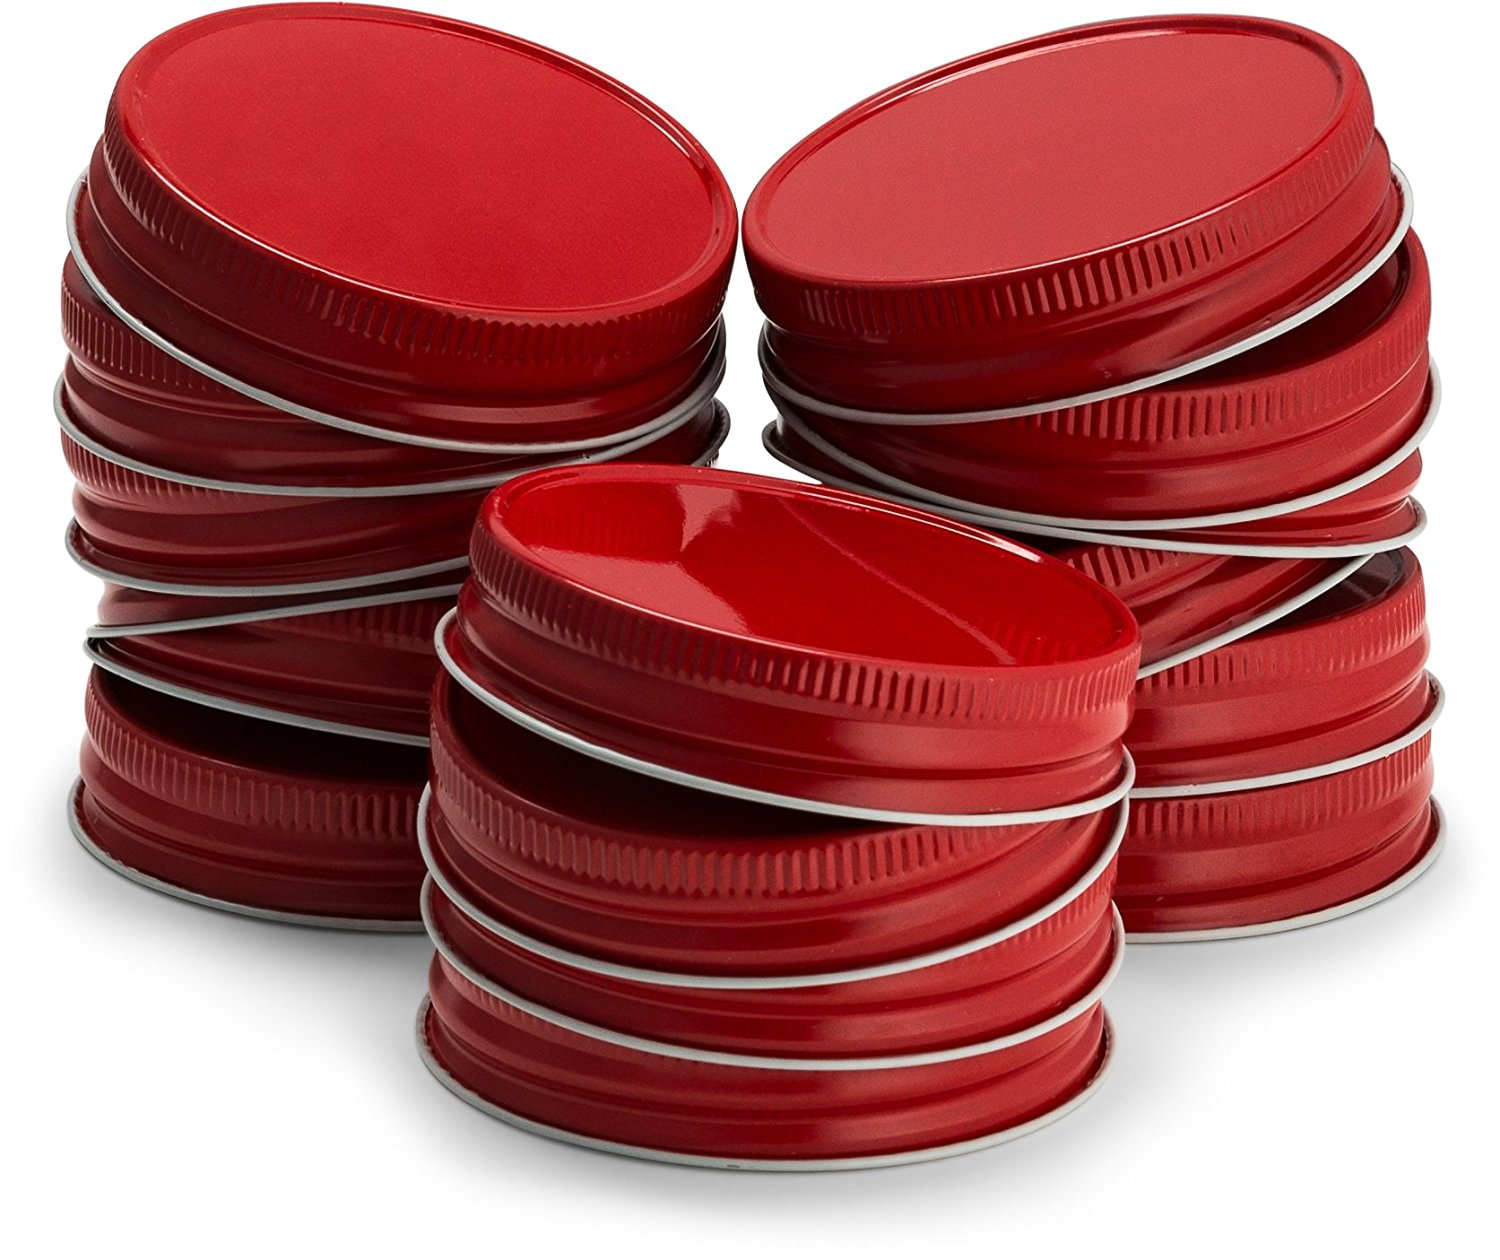 KooK Mason Jar Lids Regular Mouth, Leak Proof and Secure, Red, Gold, Silver, White, 16 pack (Red)